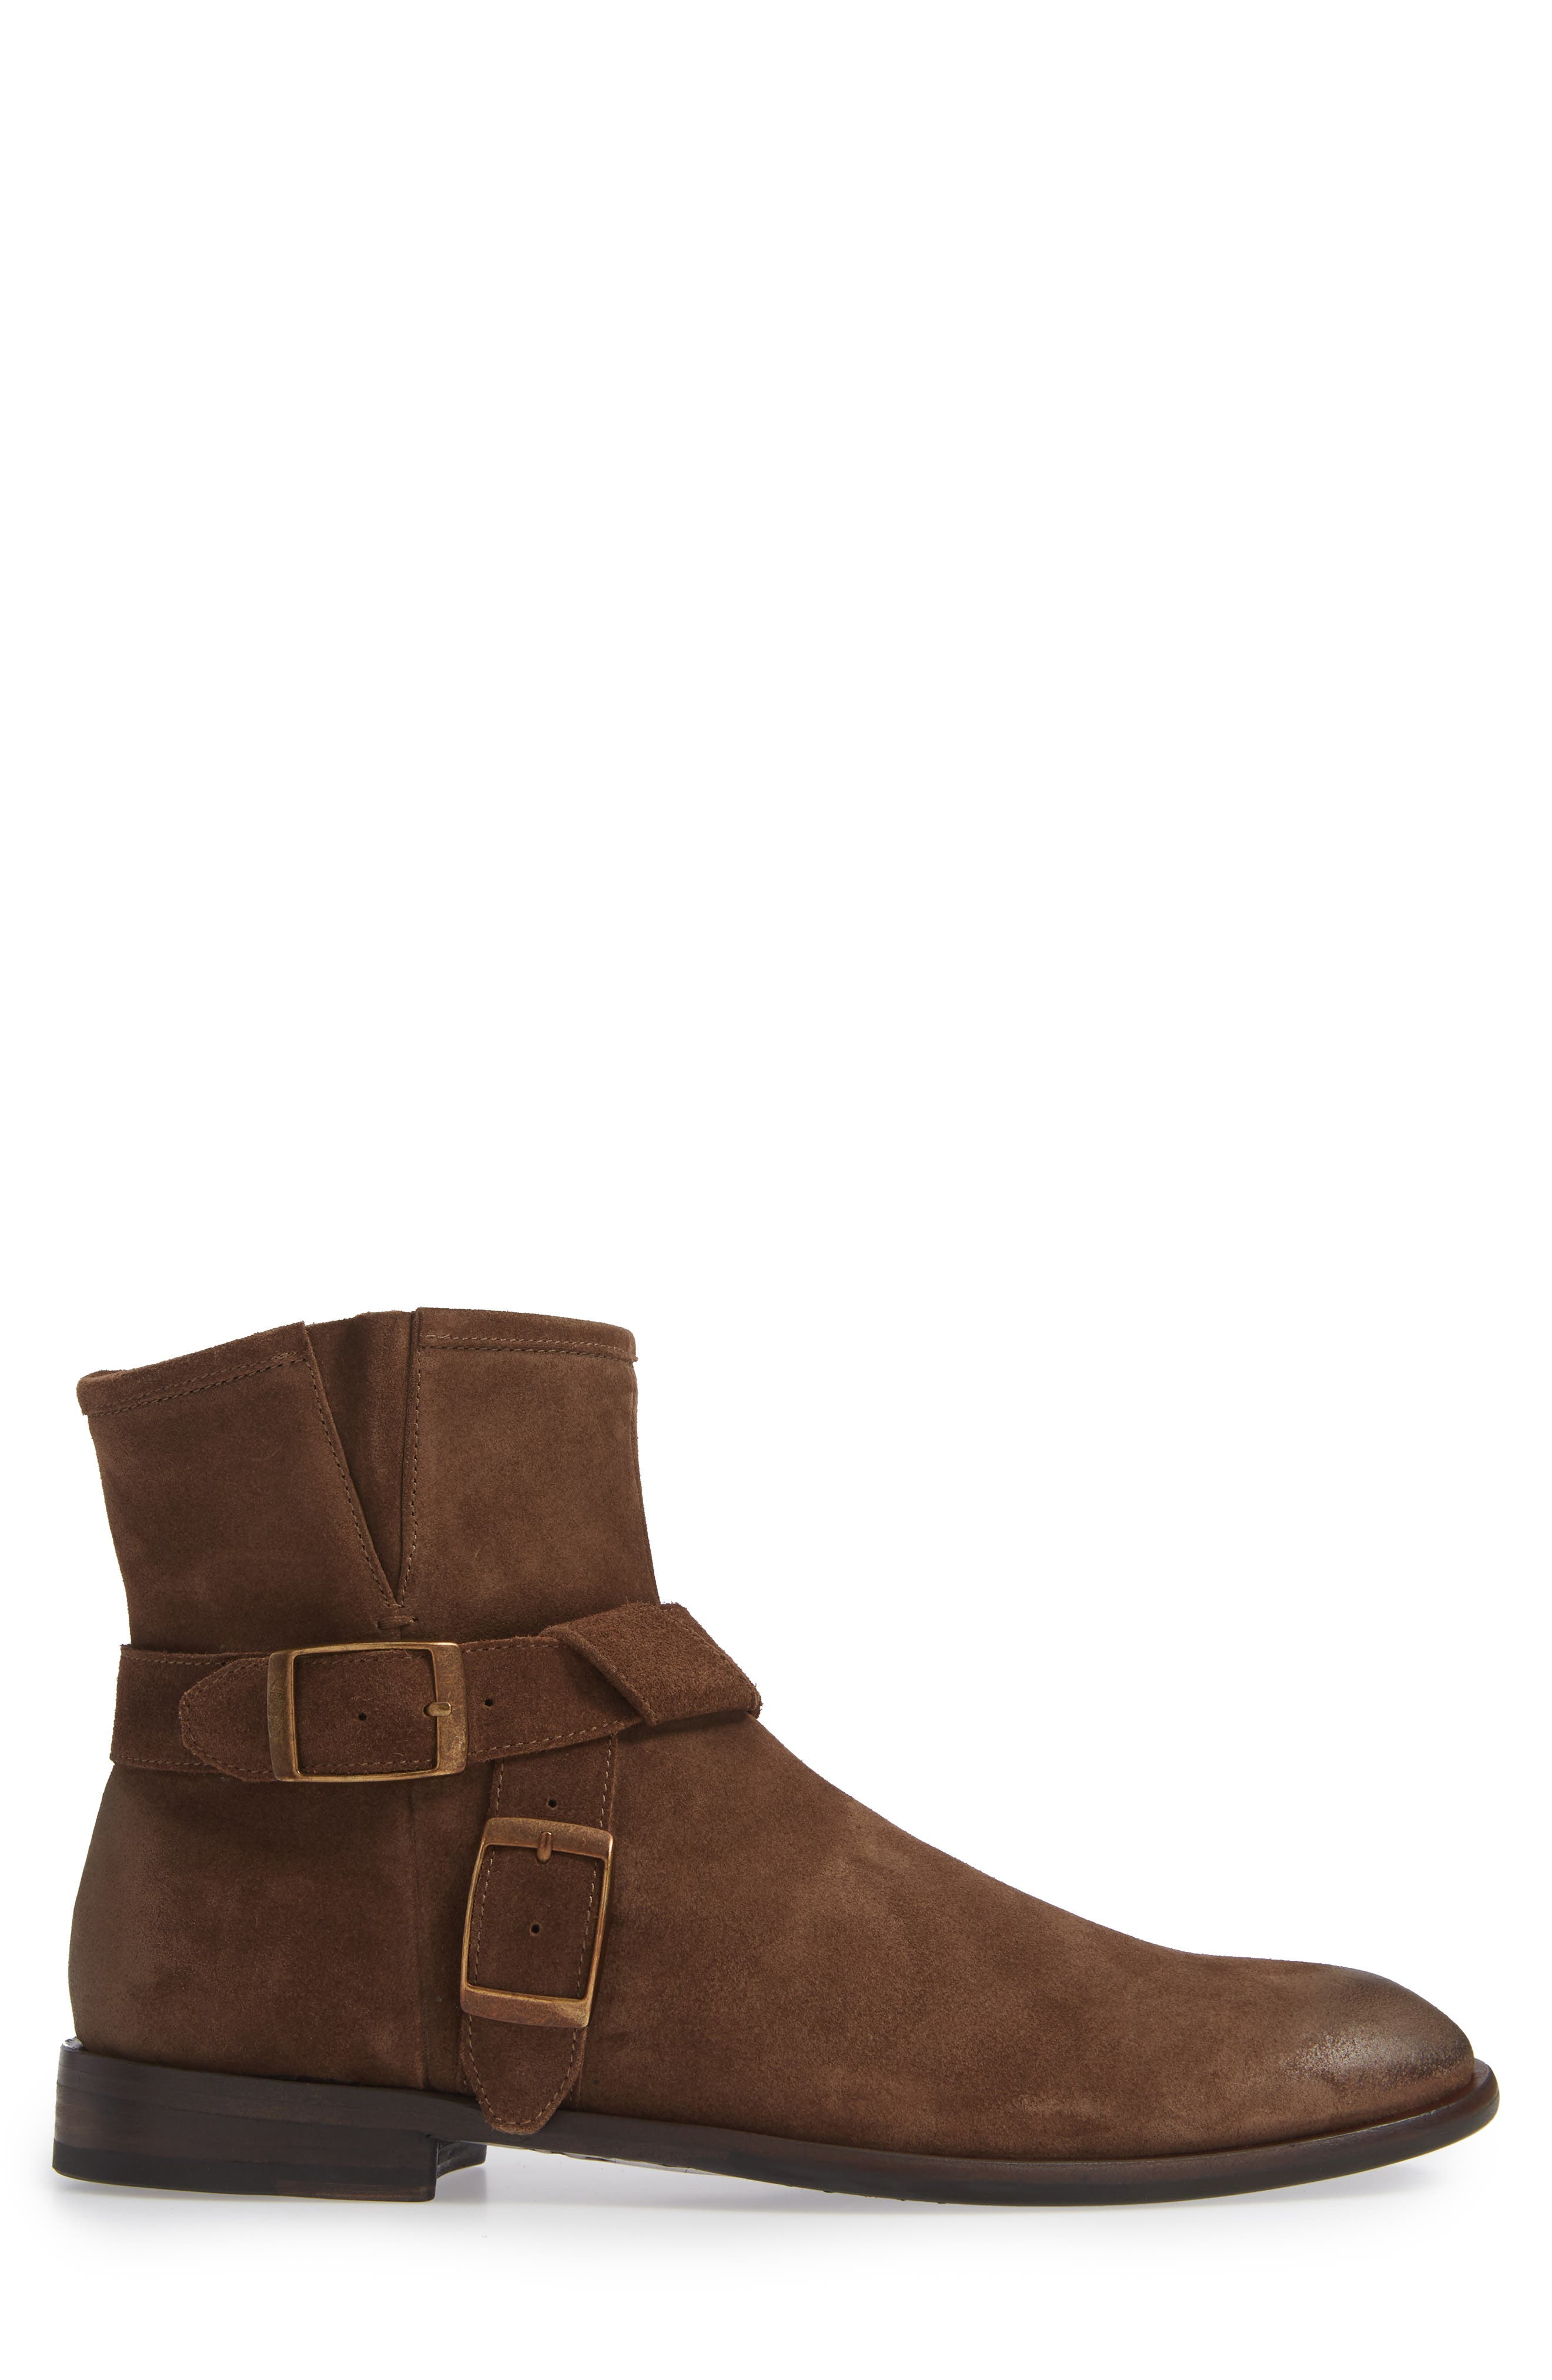 John Varvatos NYC Double Buckle Tall Boot,                             Alternate thumbnail 3, color,                             ANTIQUE BROWN SUEDE